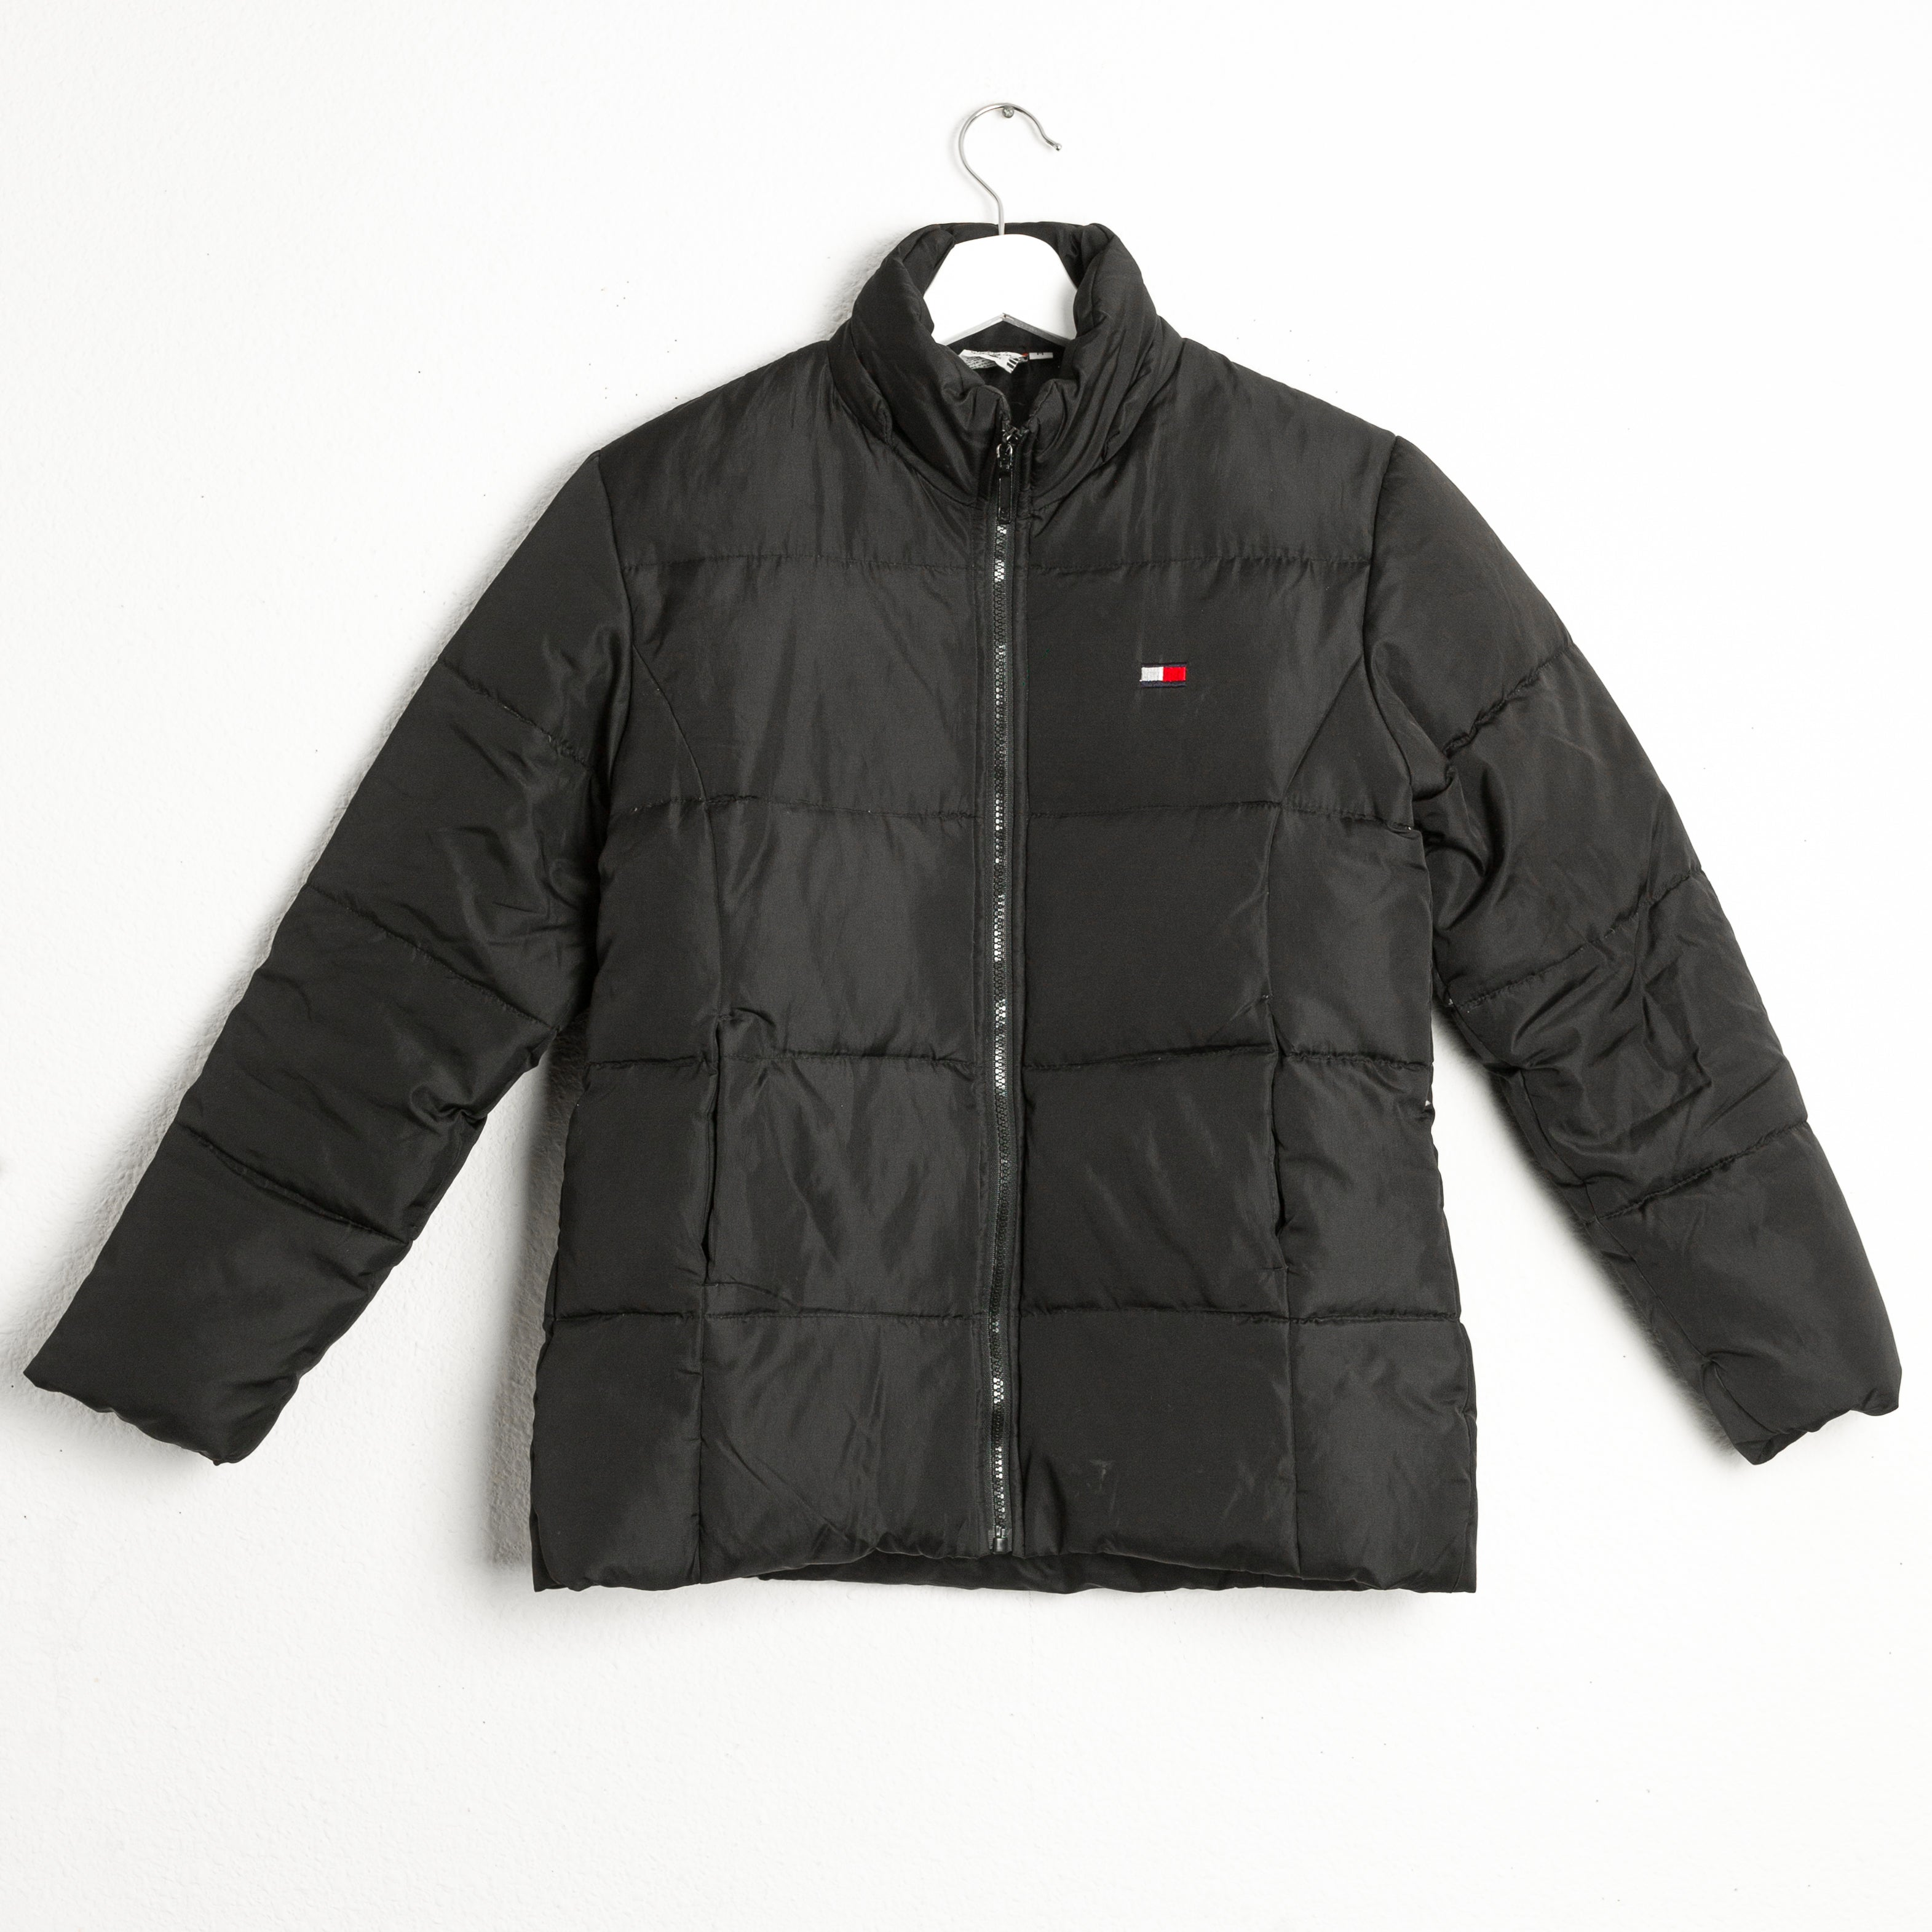 Y2K Tommy Hilfiger Women's Jacket